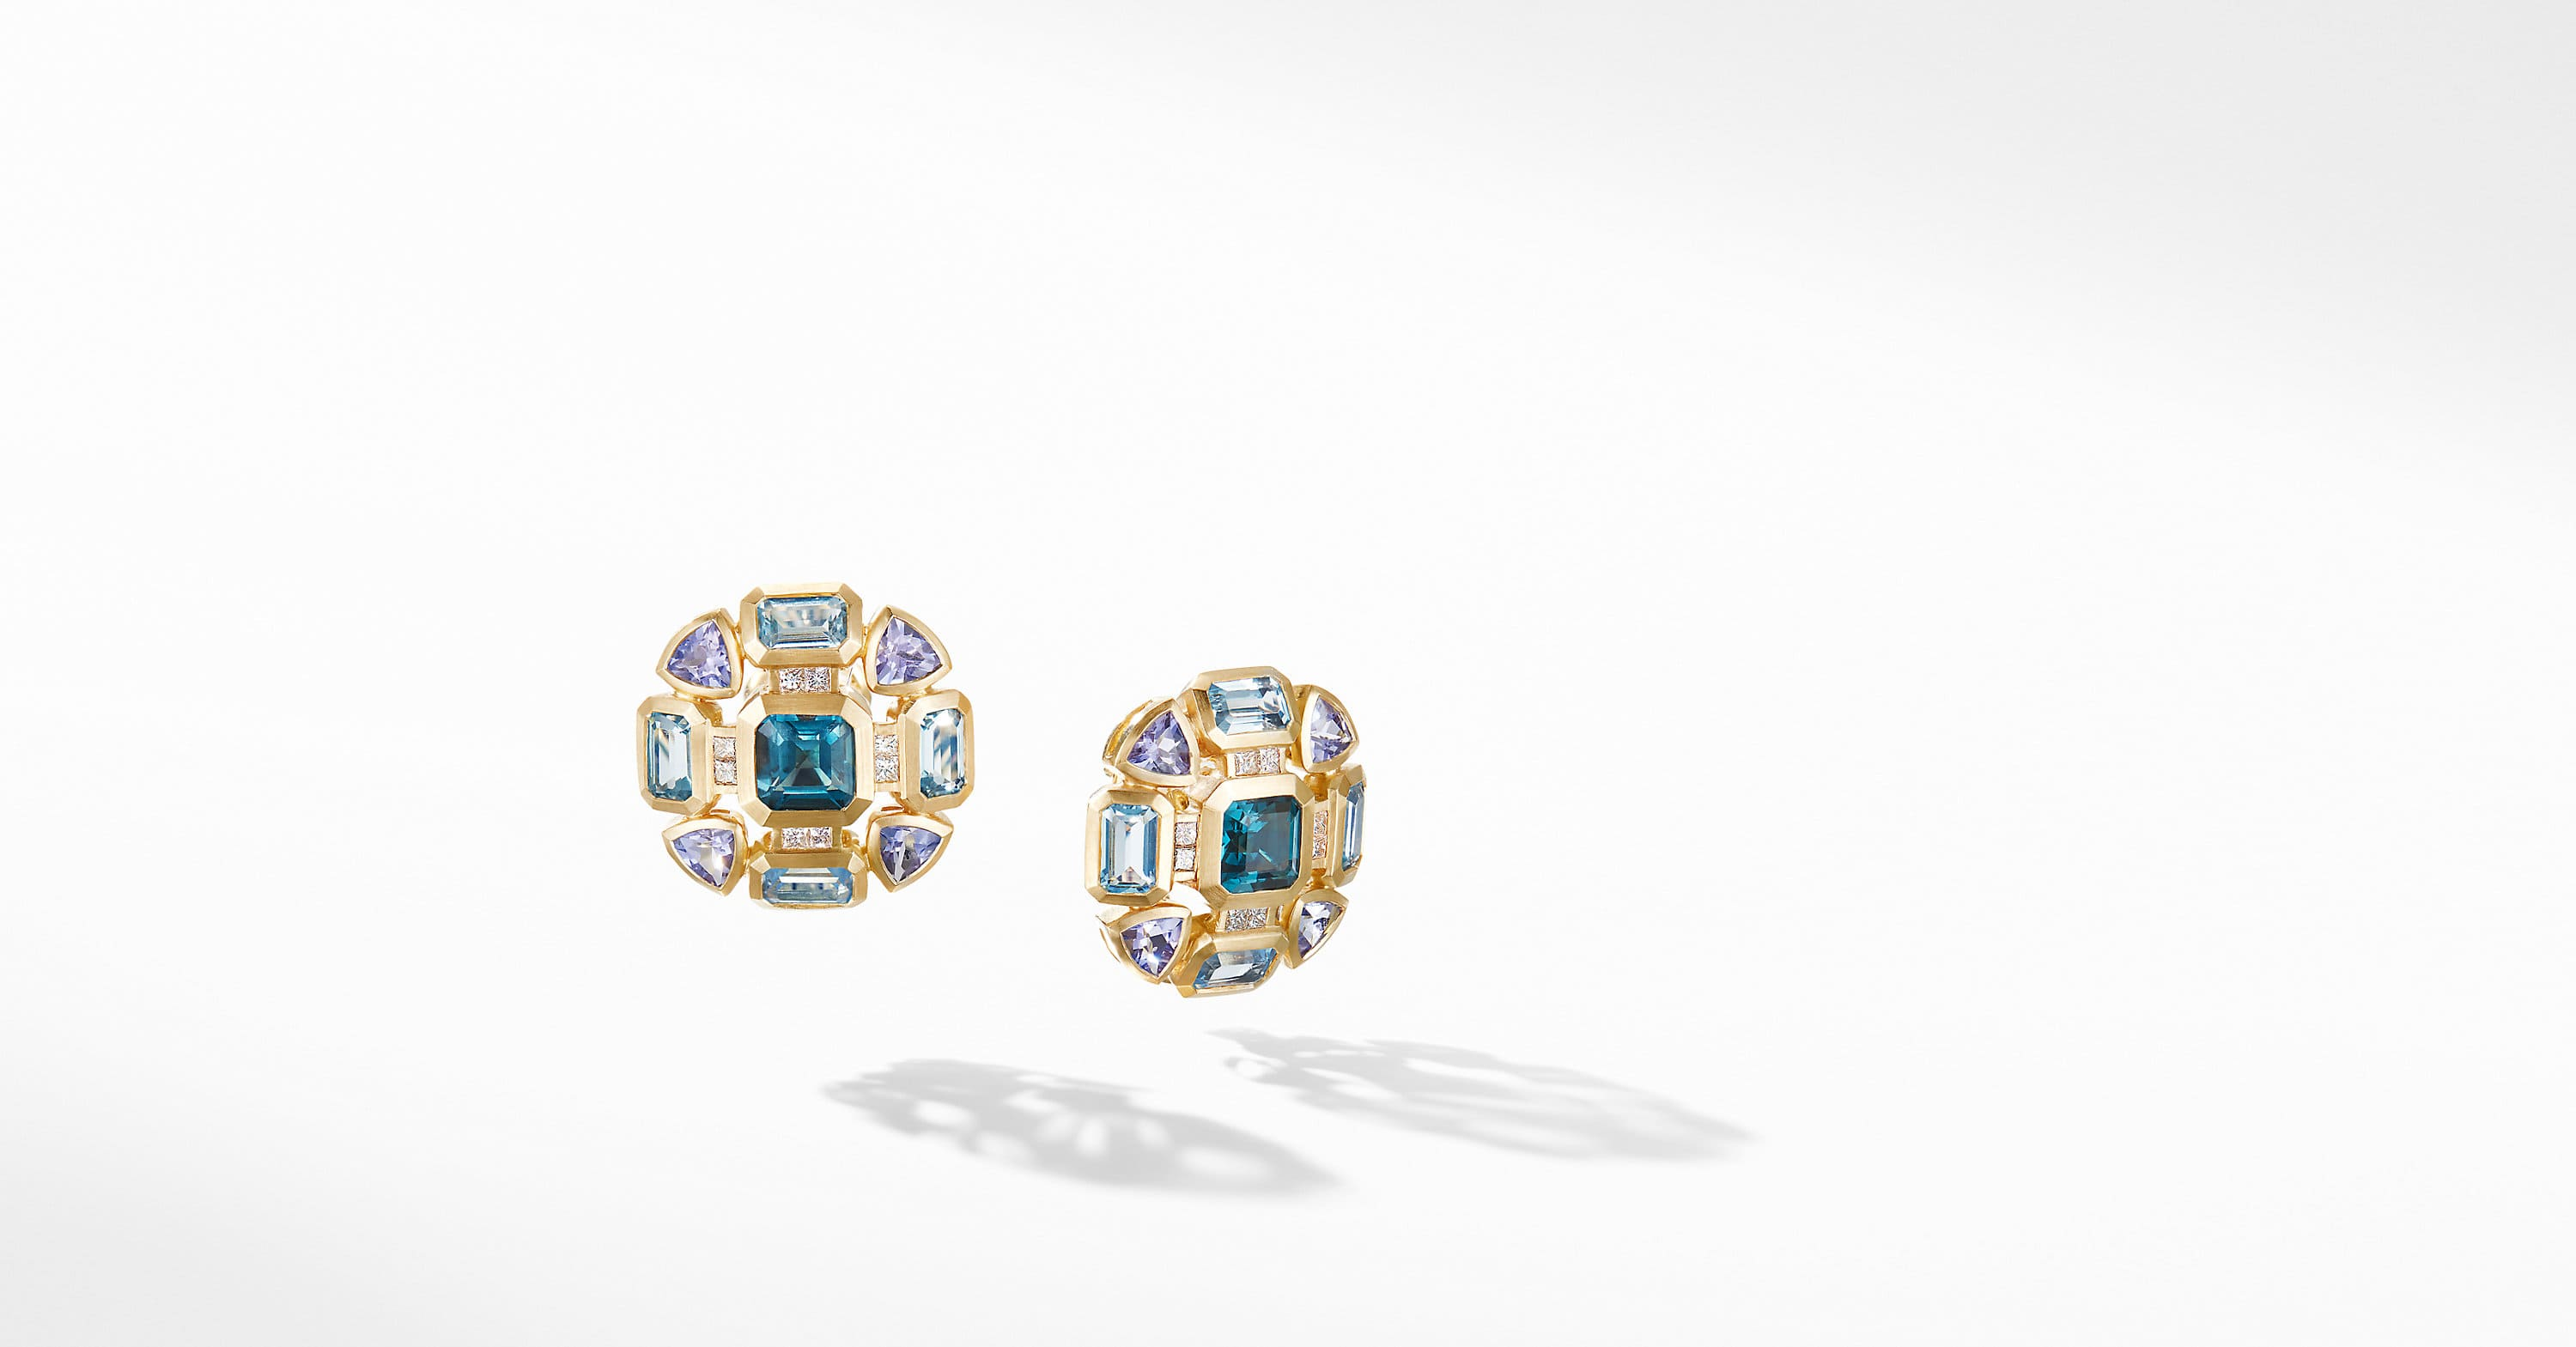 Novella Button Mosaic Earrings in 18K Yellow Gold with Diamonds